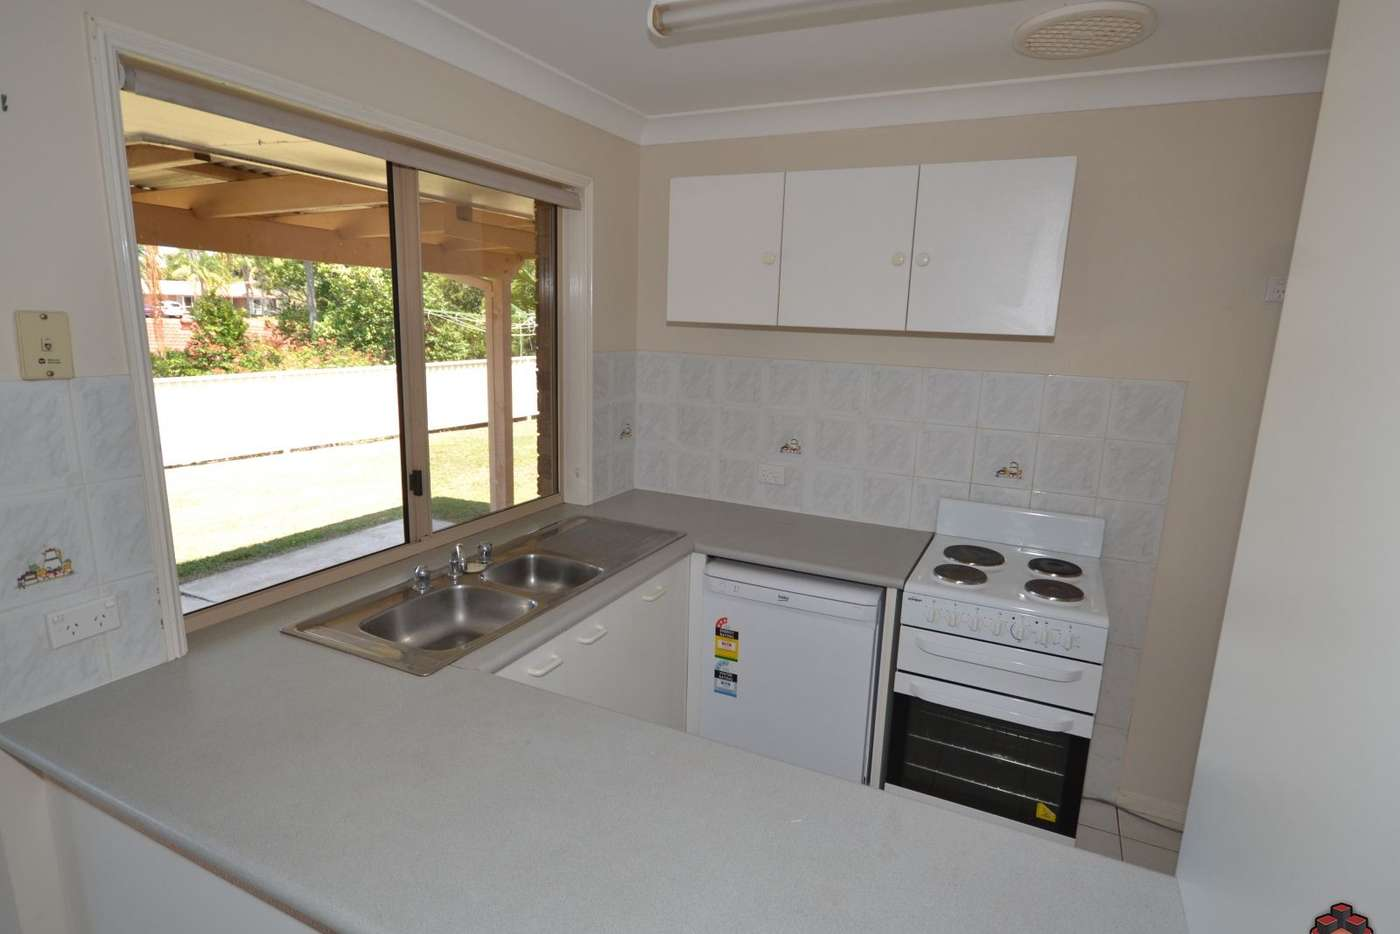 Sixth view of Homely house listing, 141 Mildura Drive, Helensvale QLD 4212